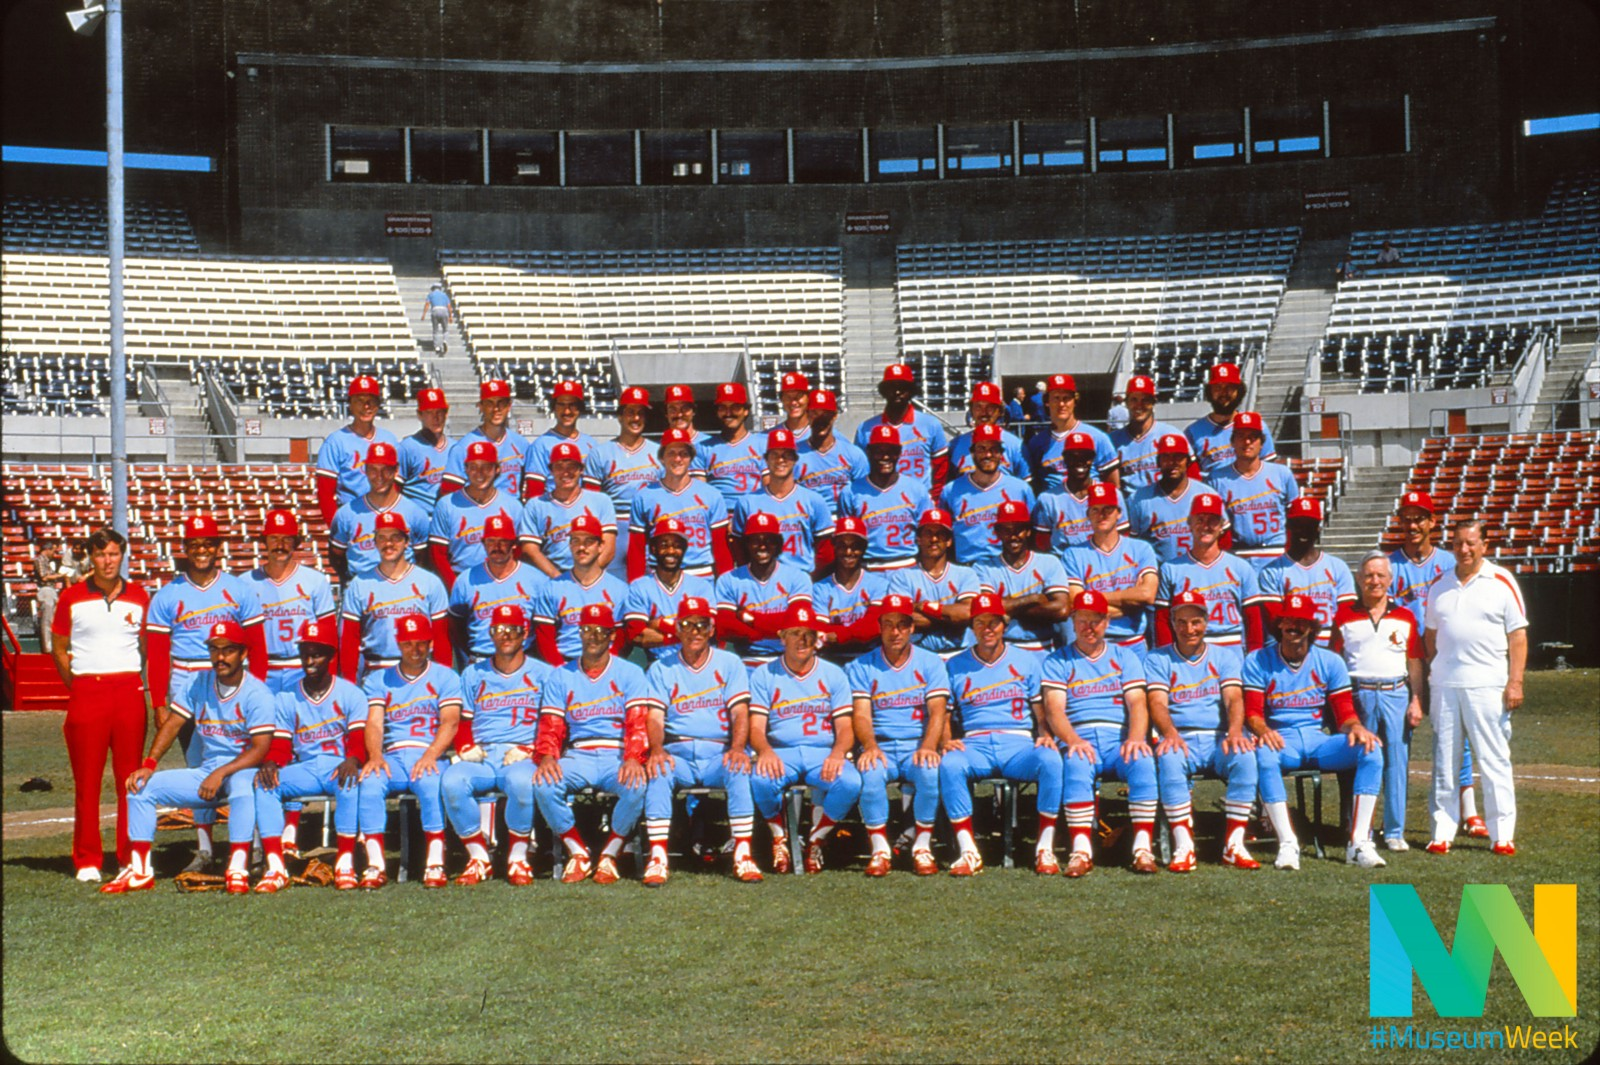 """134dbca12 Powder blue. Robin's egg blue. Swimming pool blue. It was the color that  defined an era of Cardinals baseball, and its actual name was """"victory blue."""